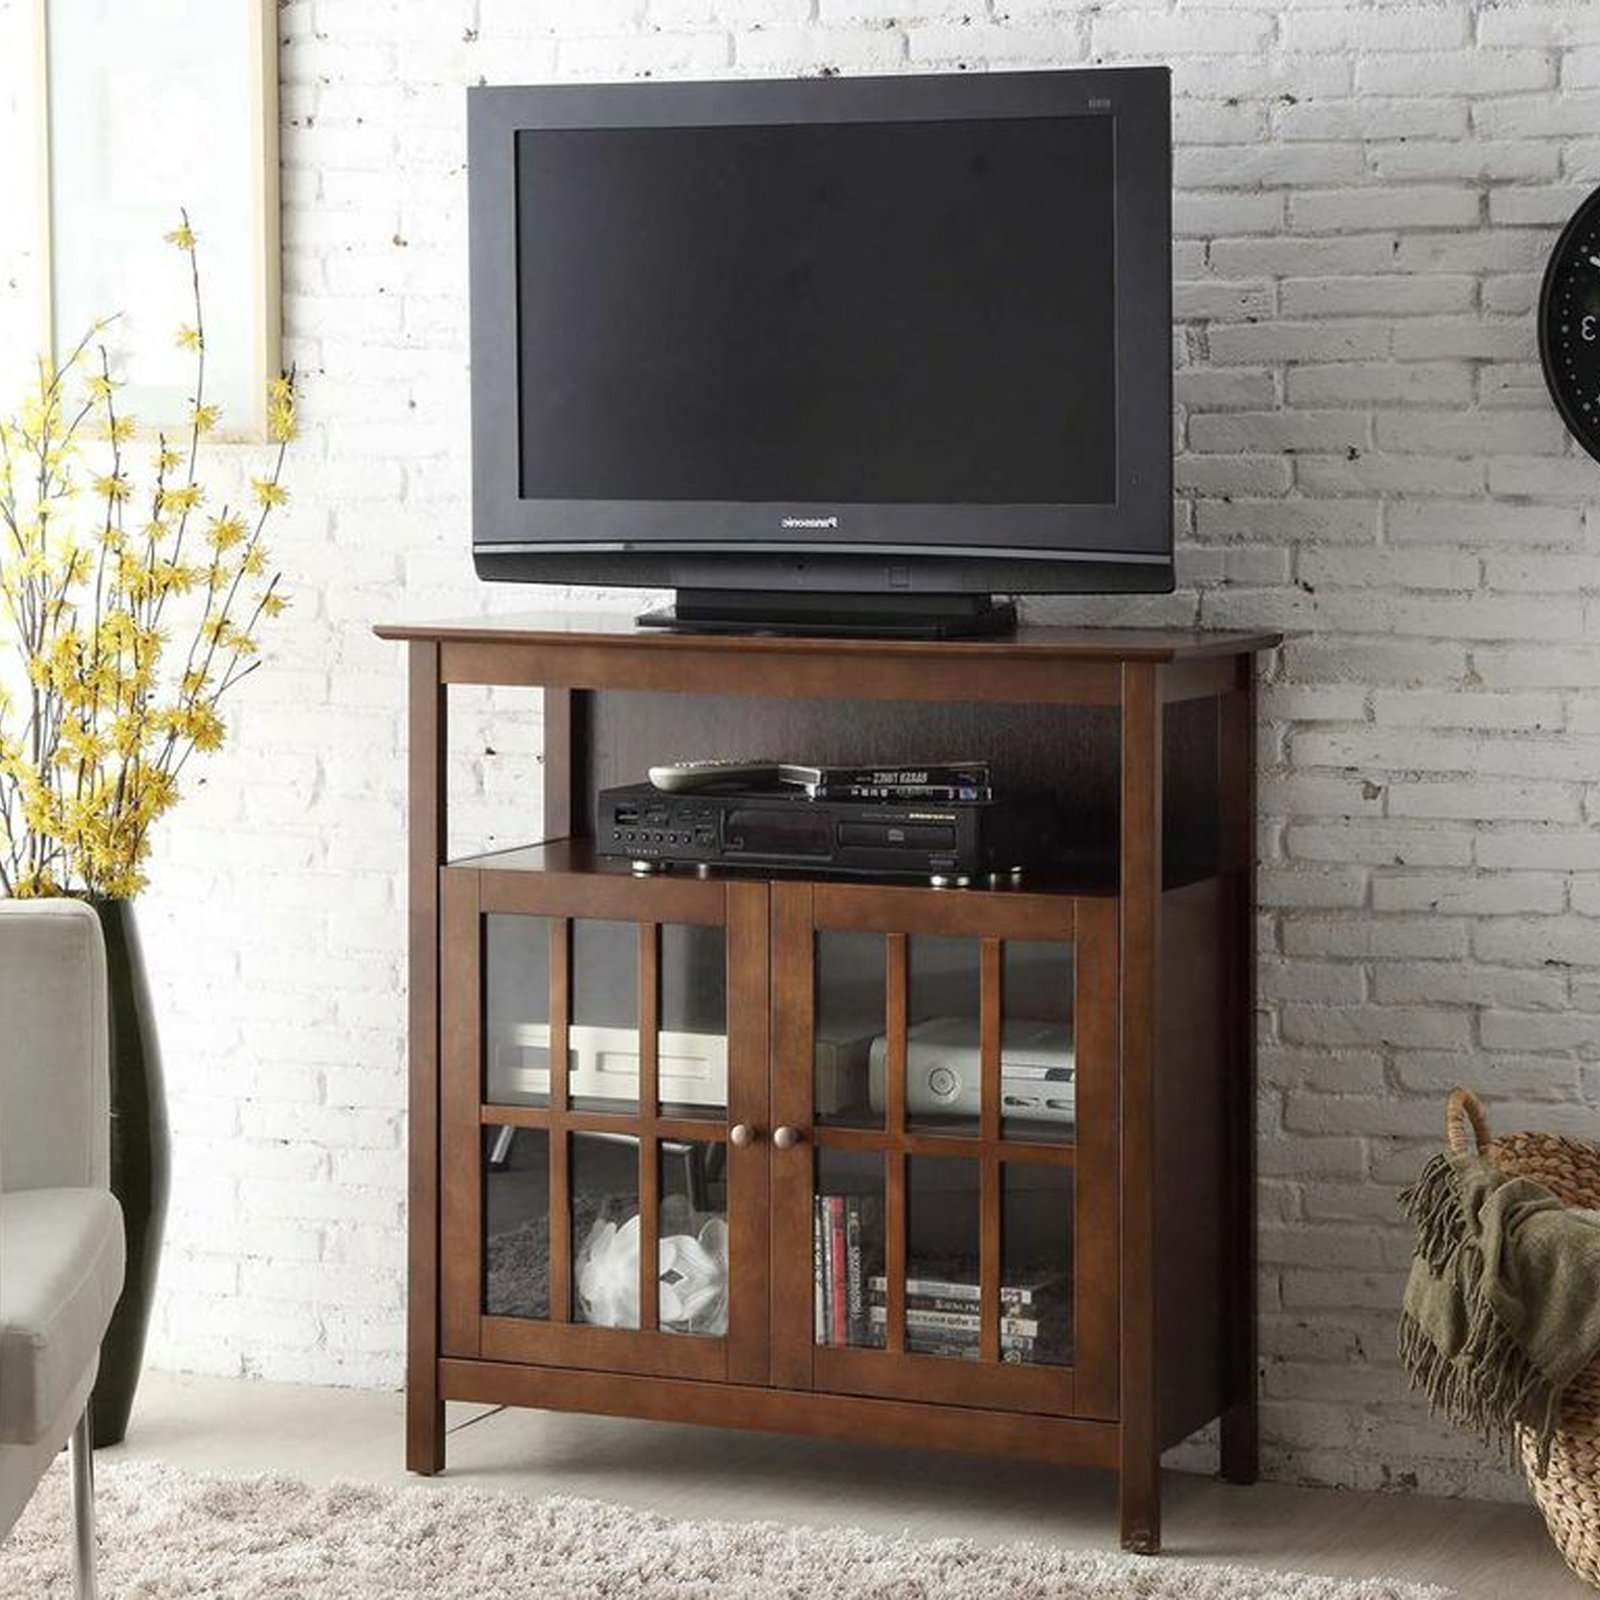 Good Highboy Tv Stands 61 About Remodel Interior Decor Home With Throughout 61 Inch Tv Stands (View 13 of 15)